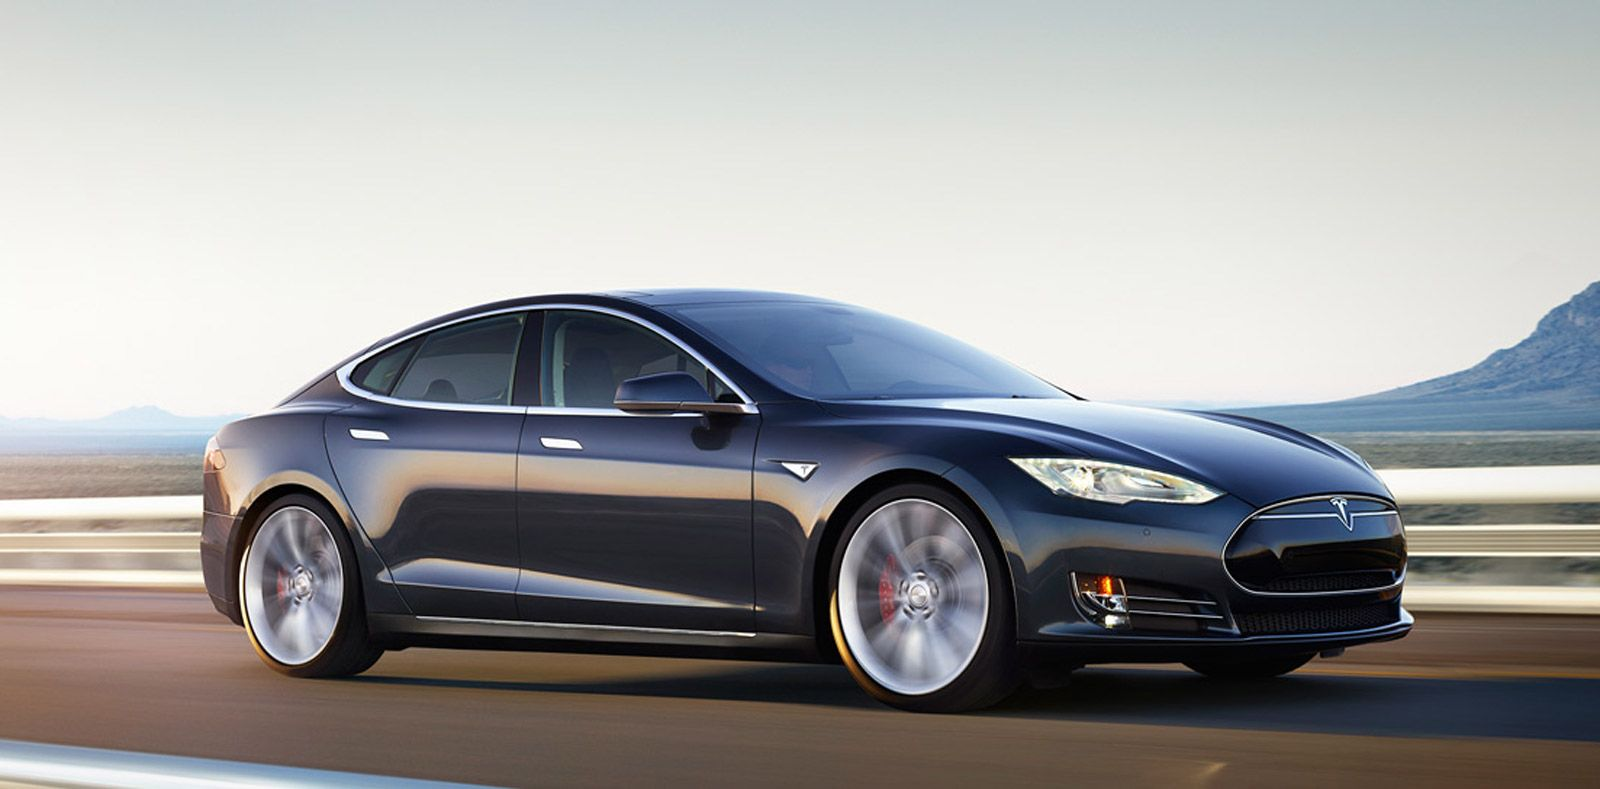 Been Searching For Stratospheric Levels Of Soaring Over The Top Heavens Rattling Hyperbole Lately You Will Do N Tesla Model S Tesla Model 2014 Tesla Model S